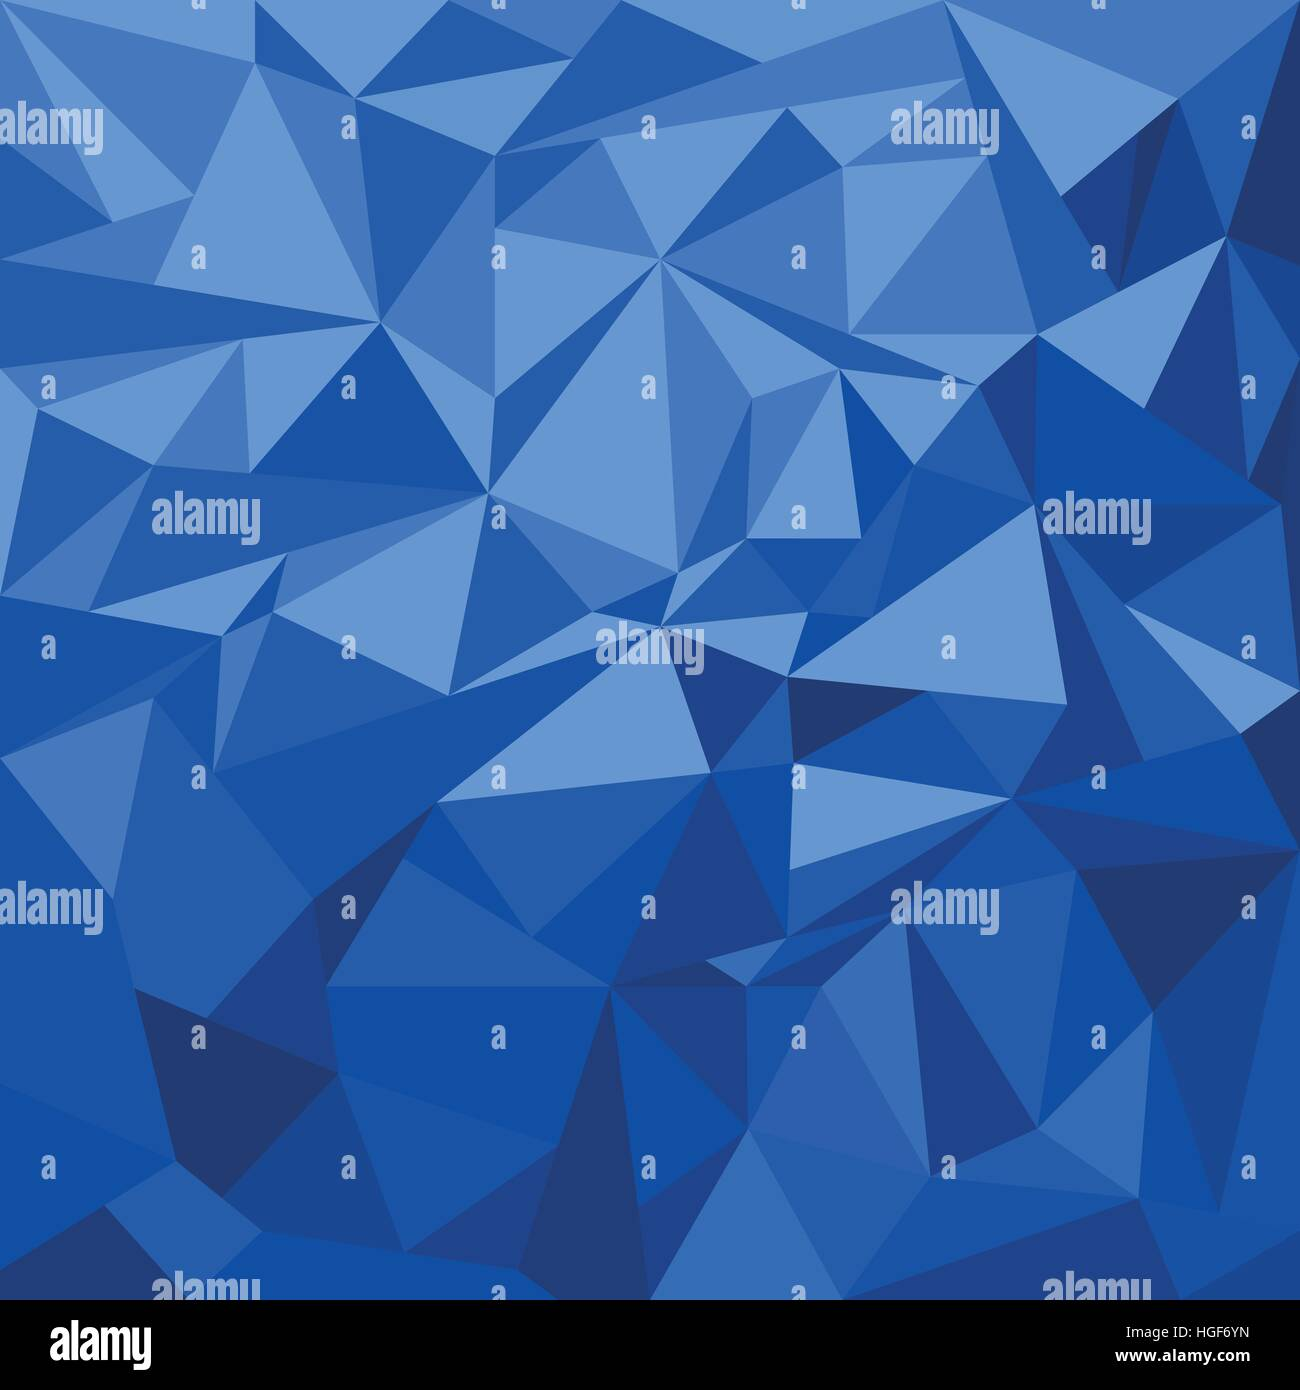 geometric, illustration, blue, wallpaper, backdrop, texture, design